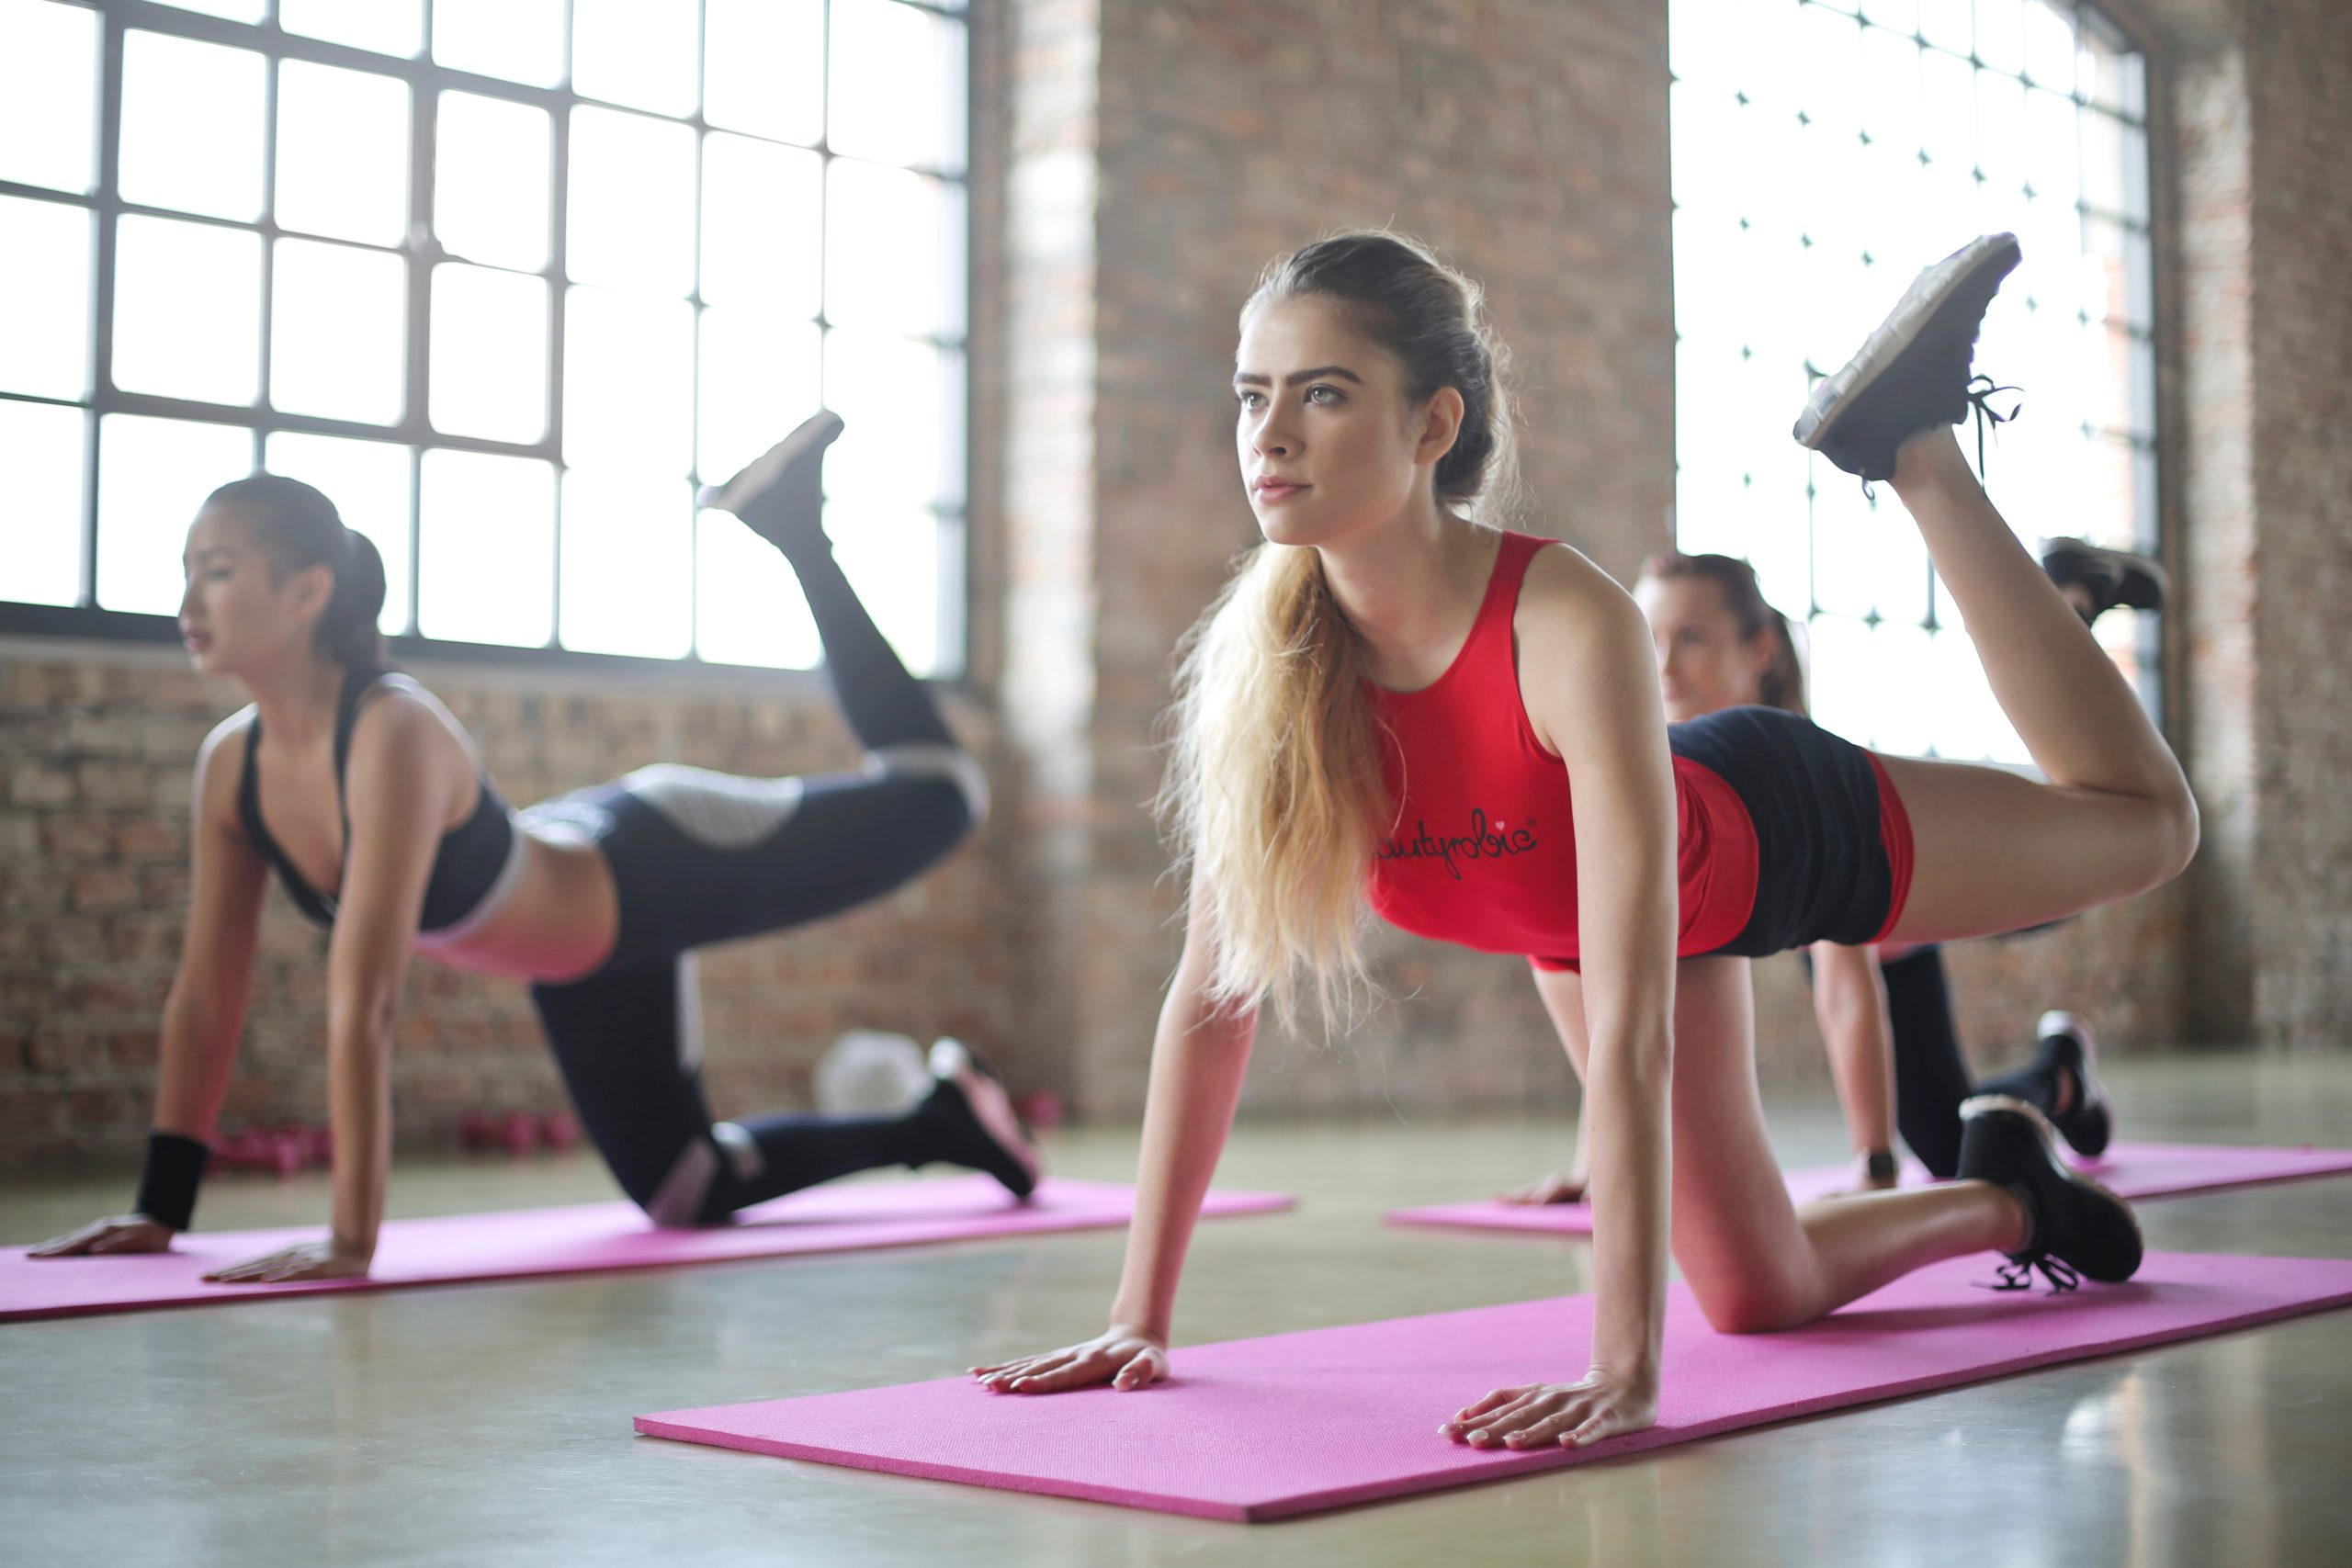 Three women stretching on yoga mats in a pilates class.